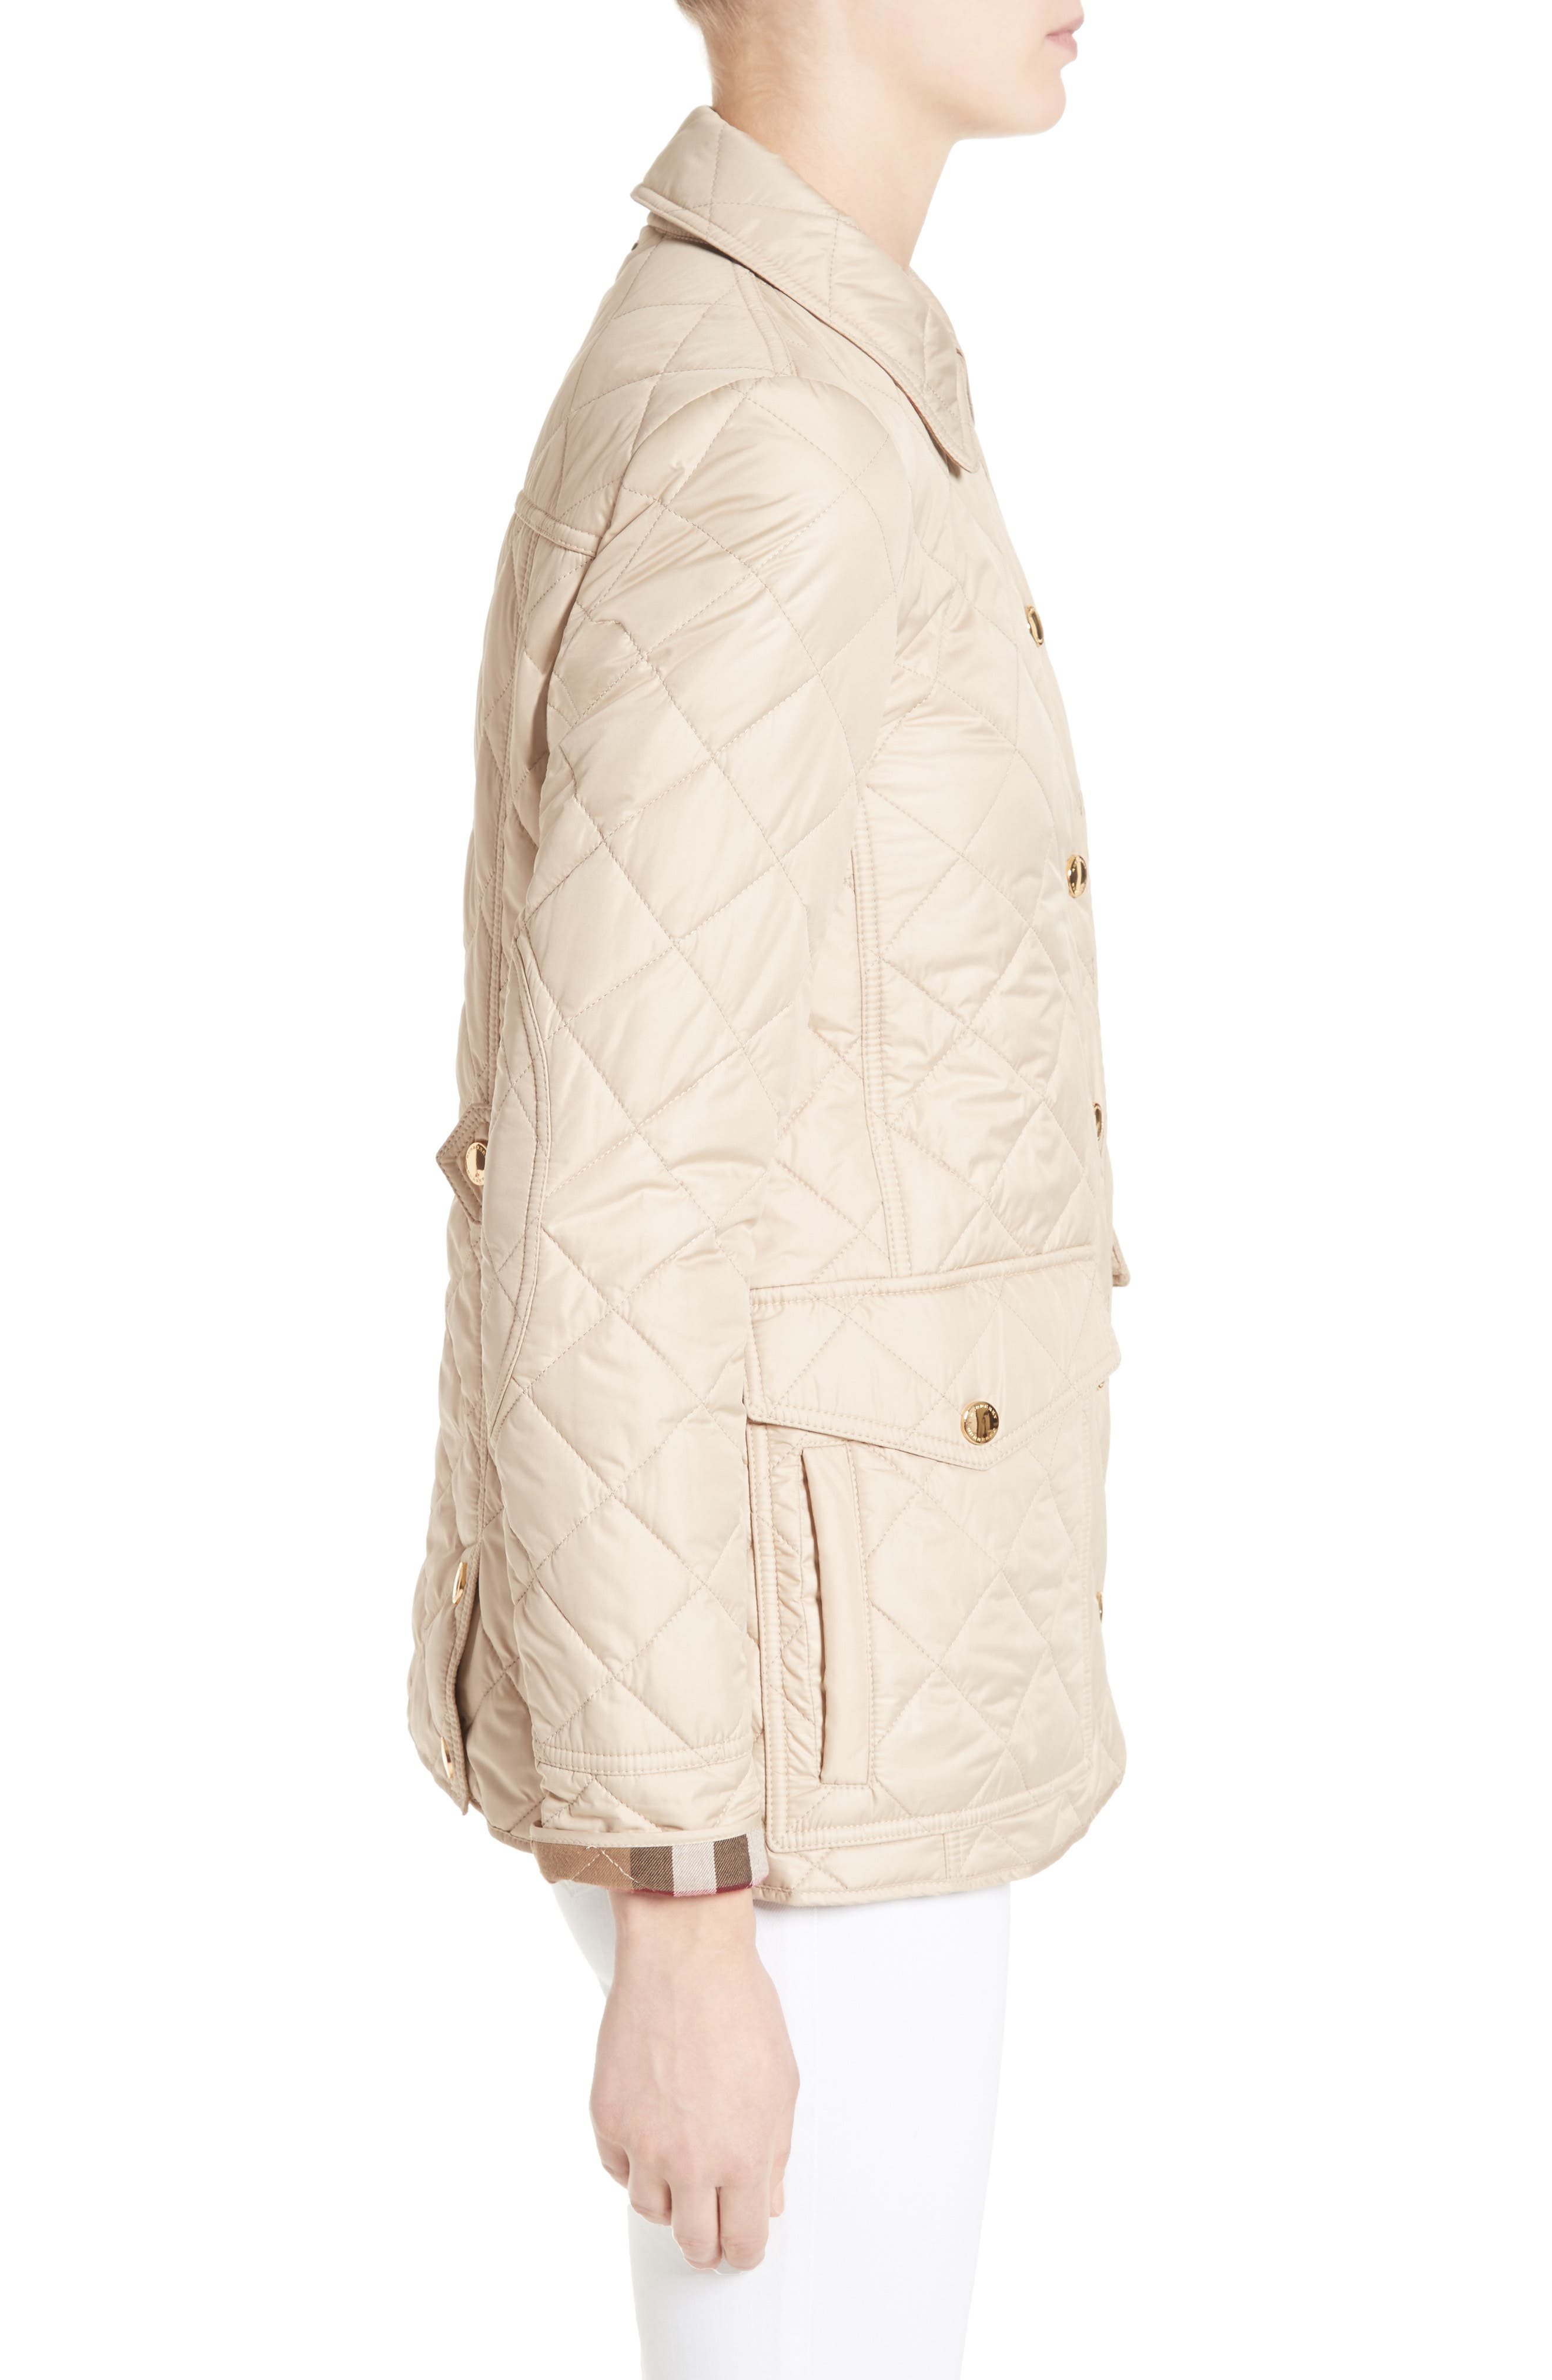 Westbridge Quilted Jacket,                             Alternate thumbnail 3, color,                             250